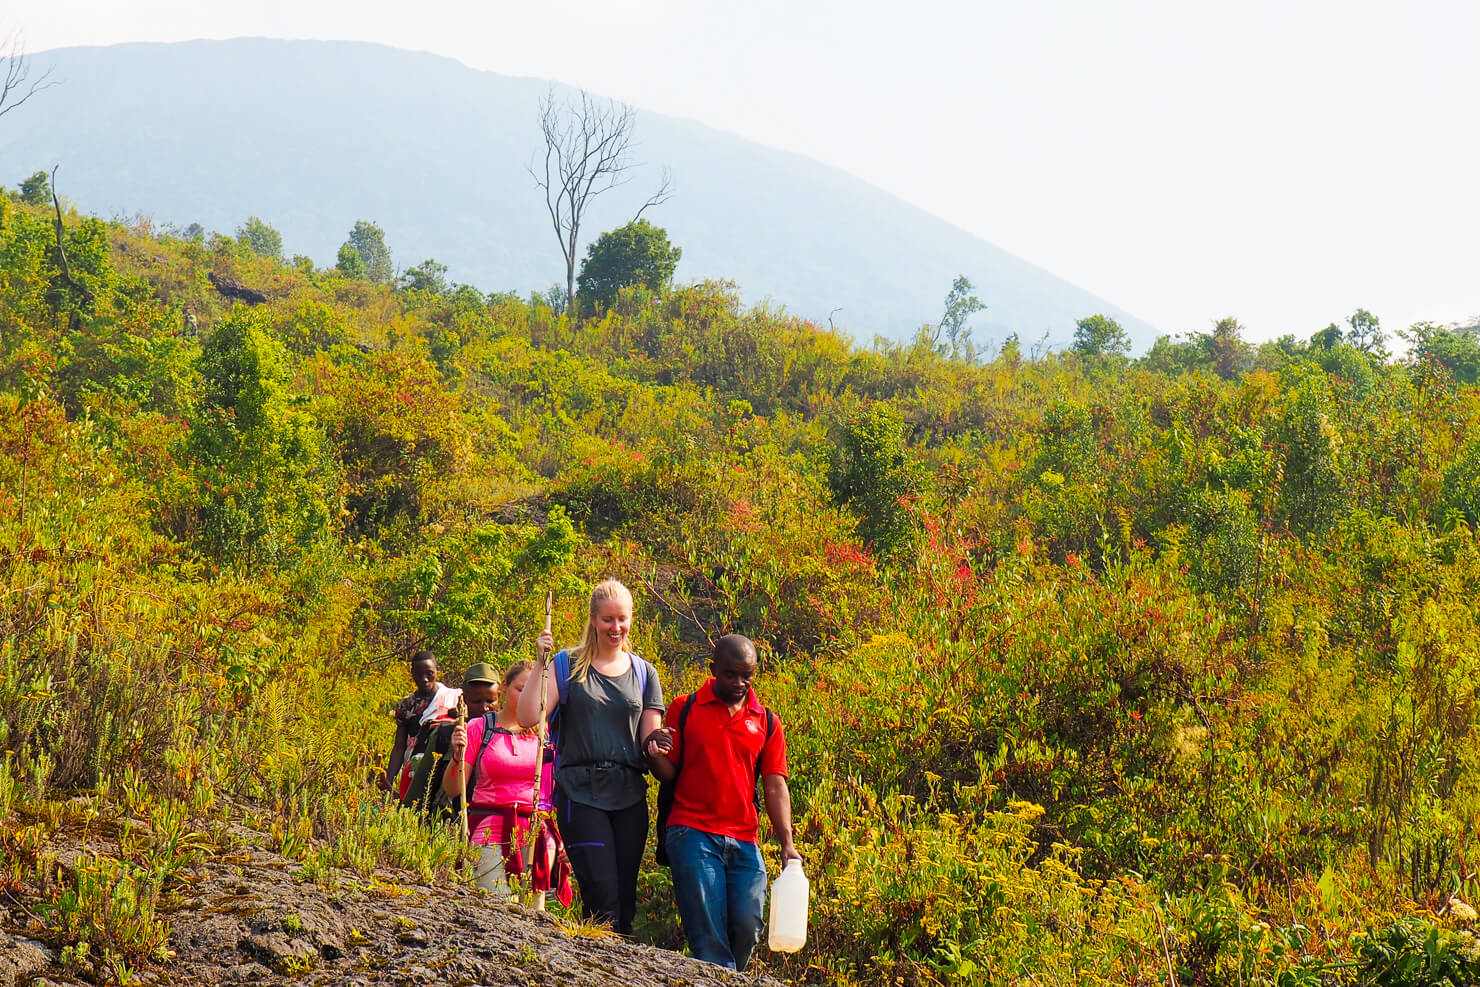 Climbing Mount Nyiragongo in the Democratic Republic of the Congo (DRC)